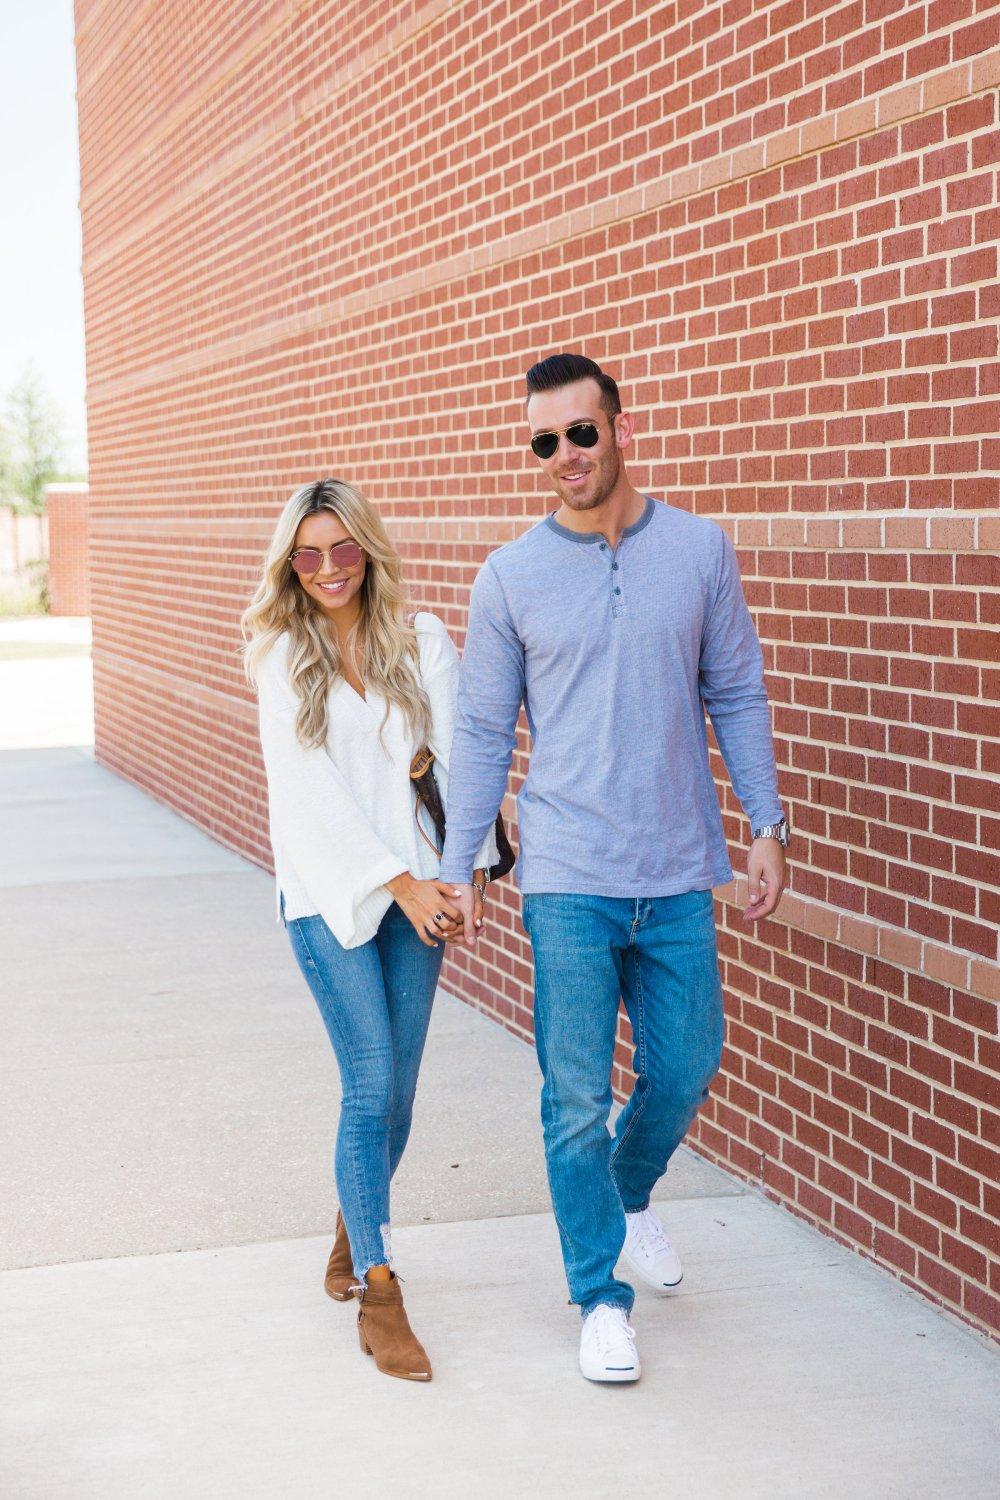 Nordstrom has great styles for the whole family! Men's fashion and women's fashion! Here are some of our favorites!